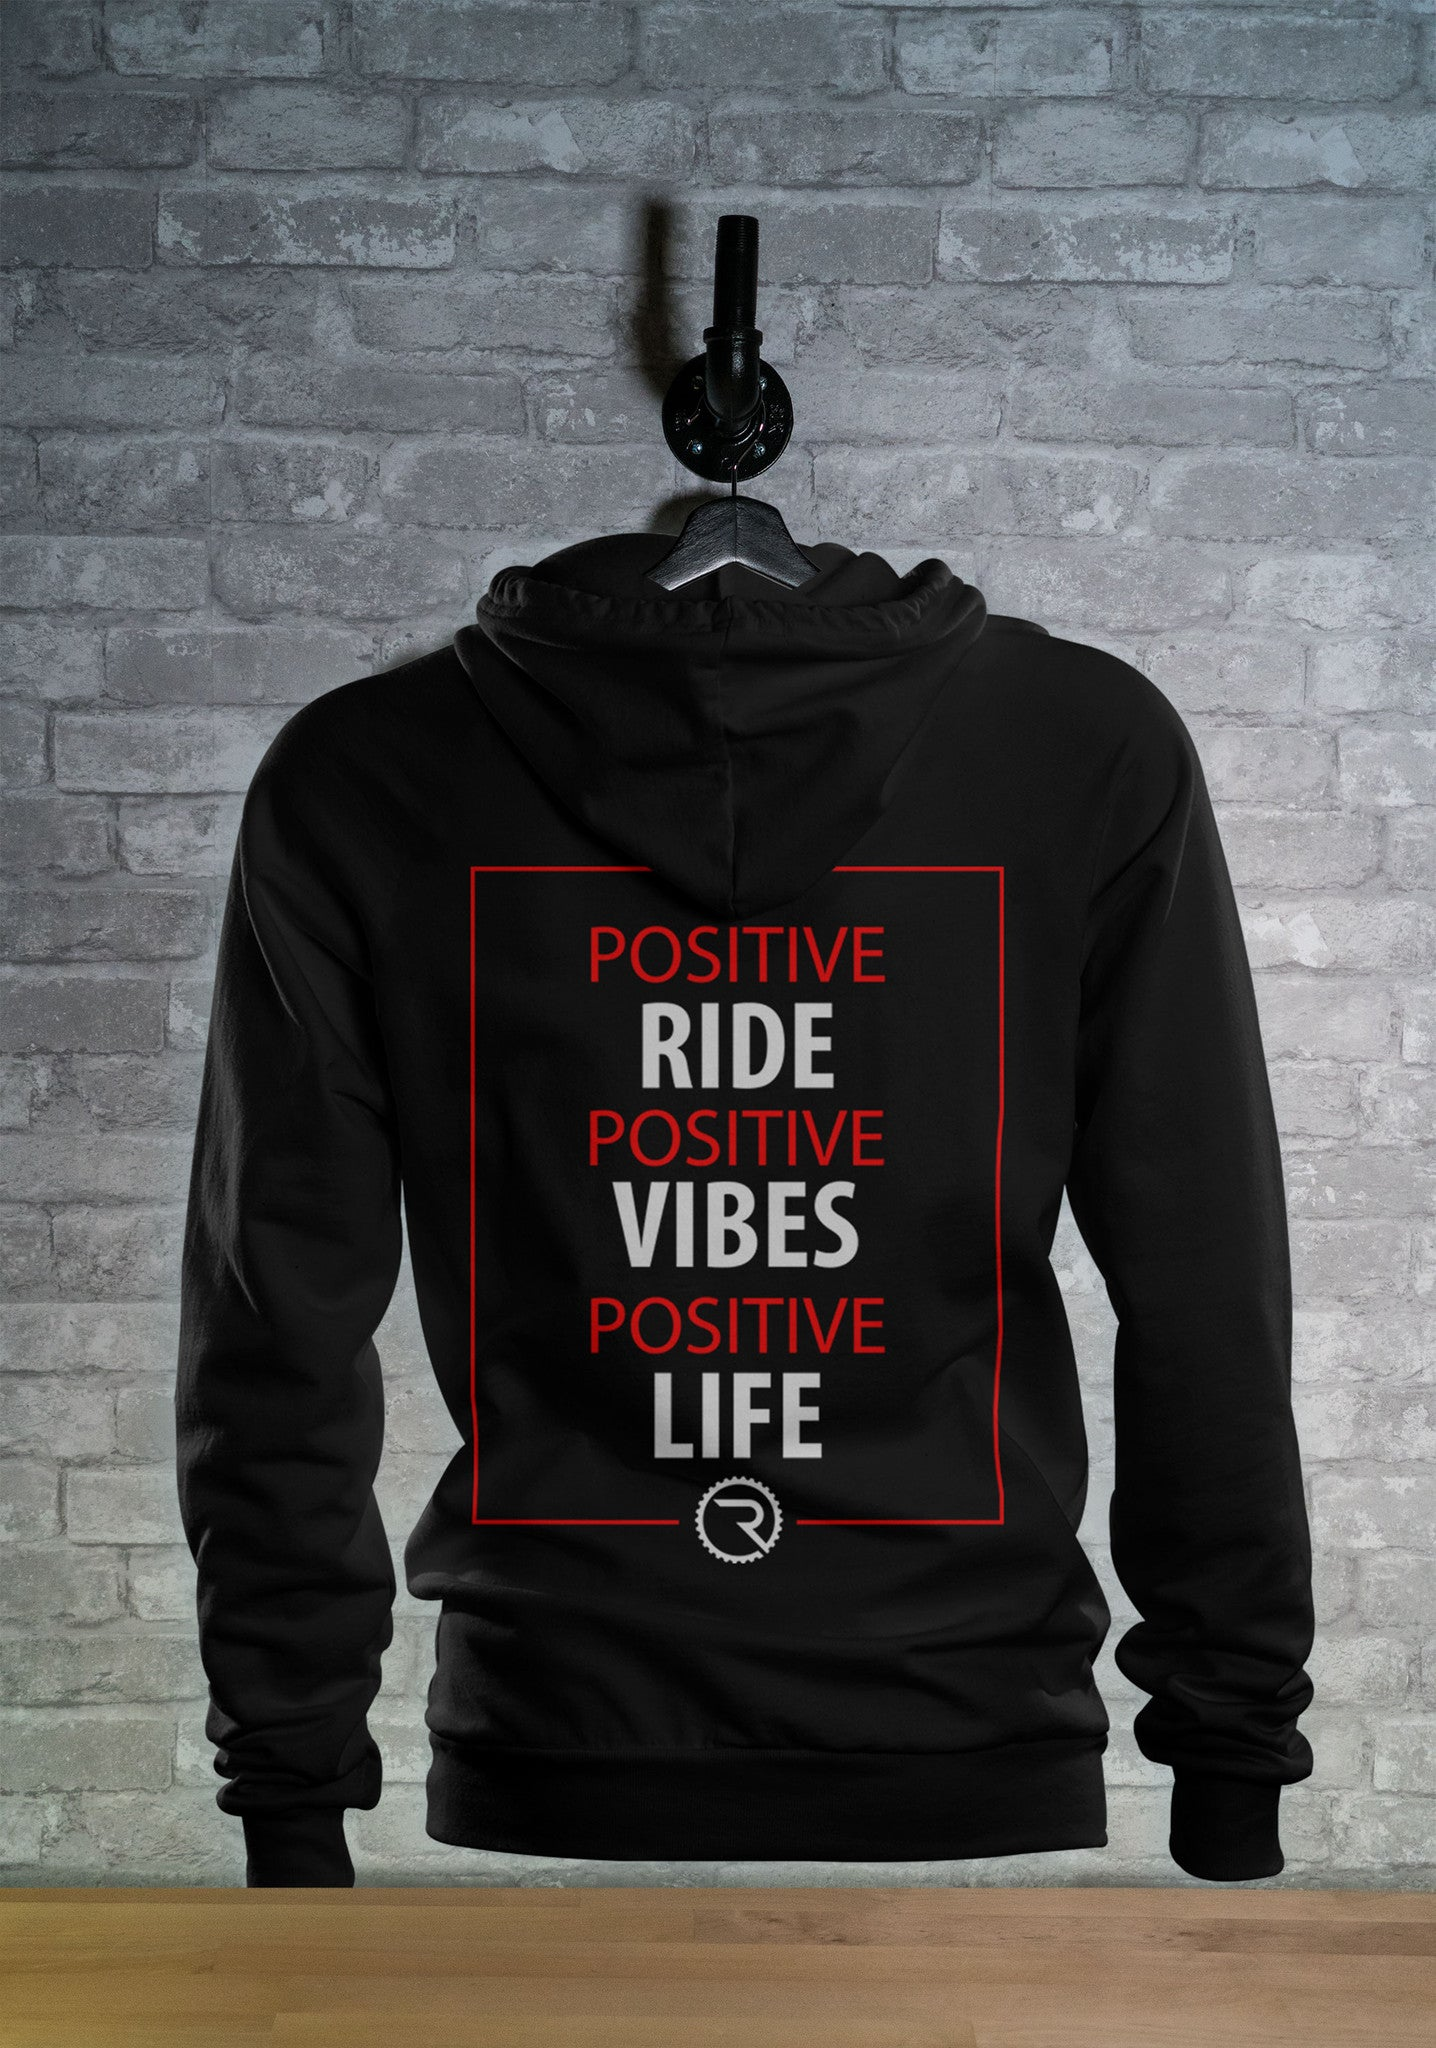 Positivity Over Everything Hoodie - Ride Apparel Co.